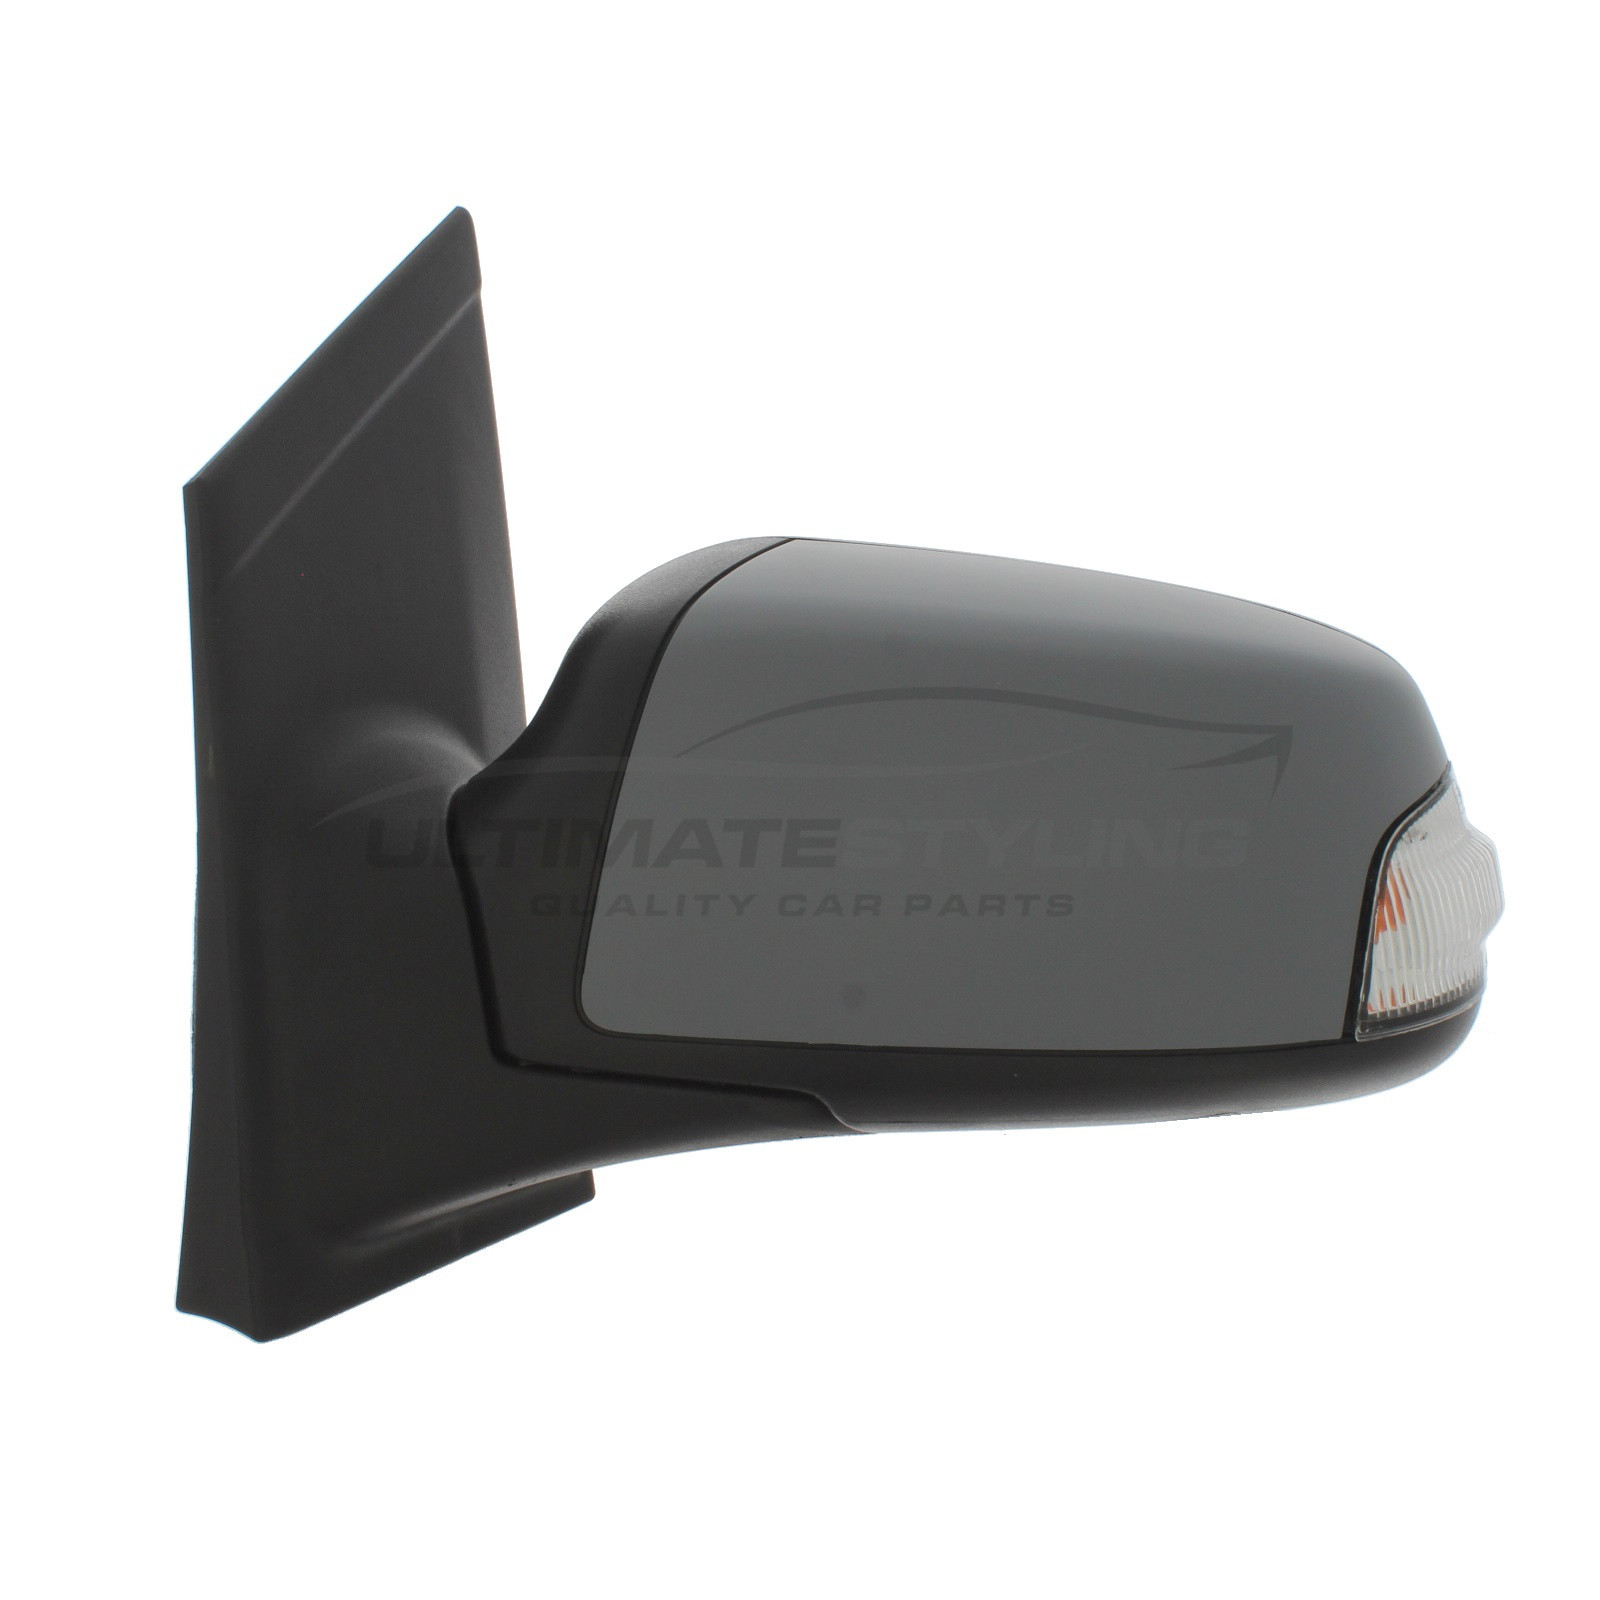 Ford Focus 2004-2008 Left Side Wing Mirror with Heater and Indicator Lamp